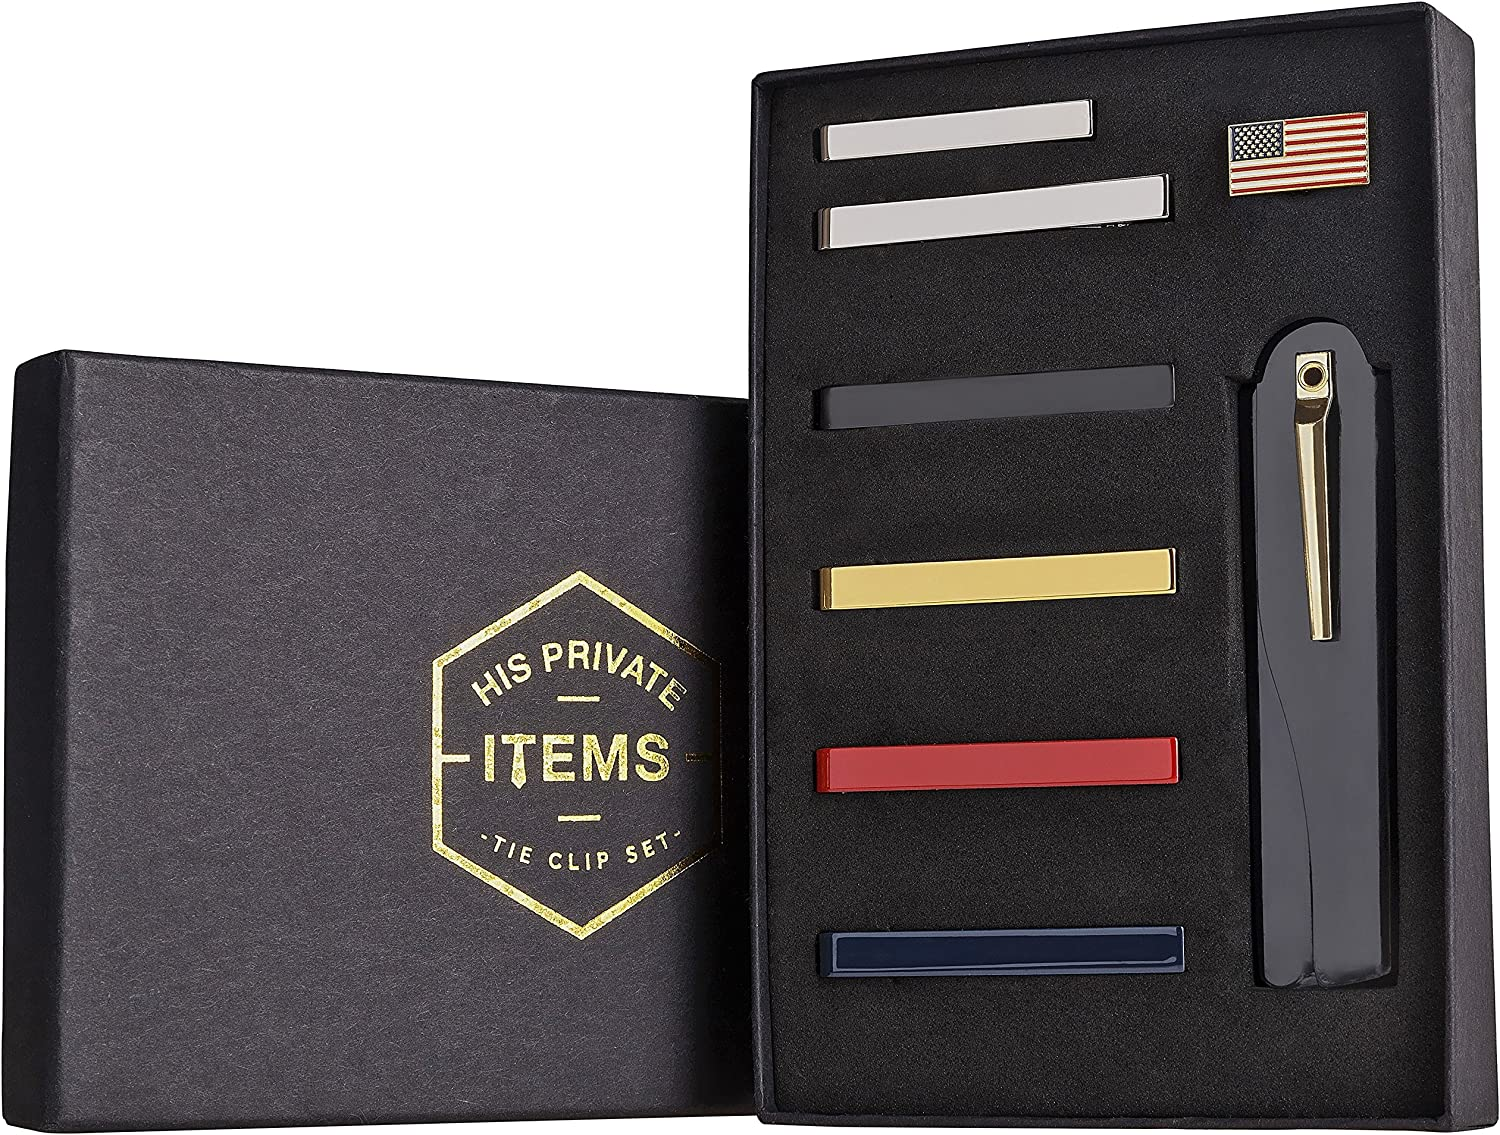 His Private Items Tie Bar Clip Set for Men -[6 Pc]- Pinch/Hold Skinny & Regular Ties - Gift Box